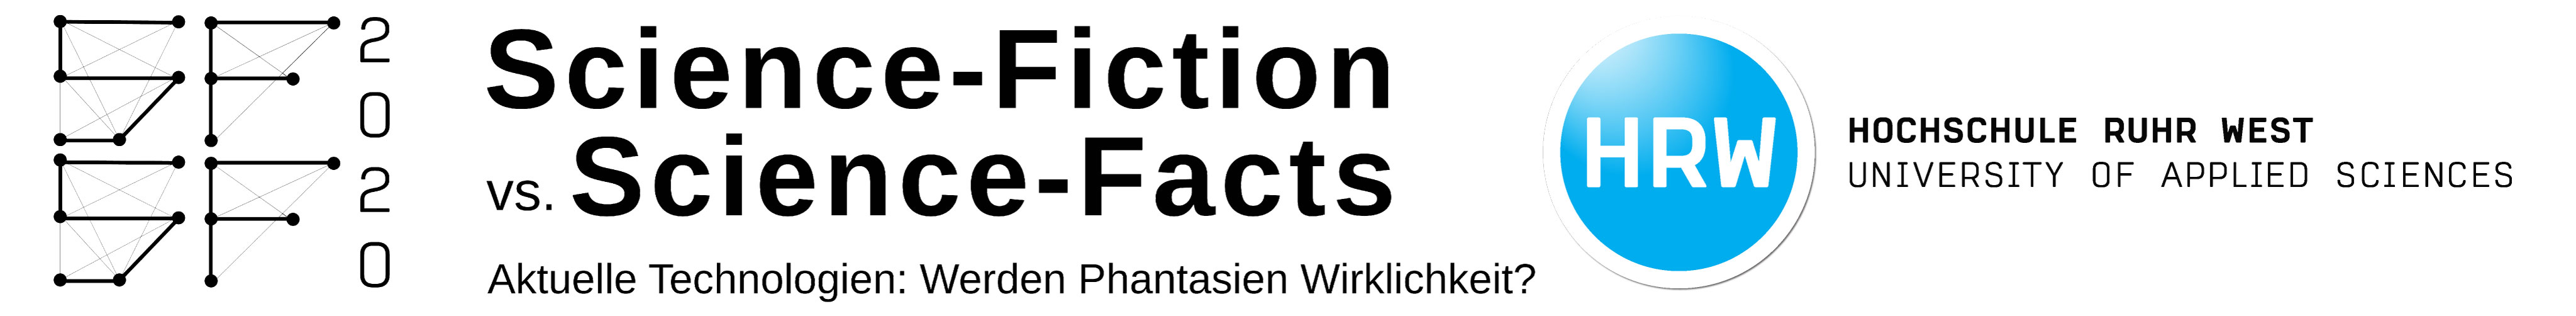 Science-Fiction vs. Science-Facts